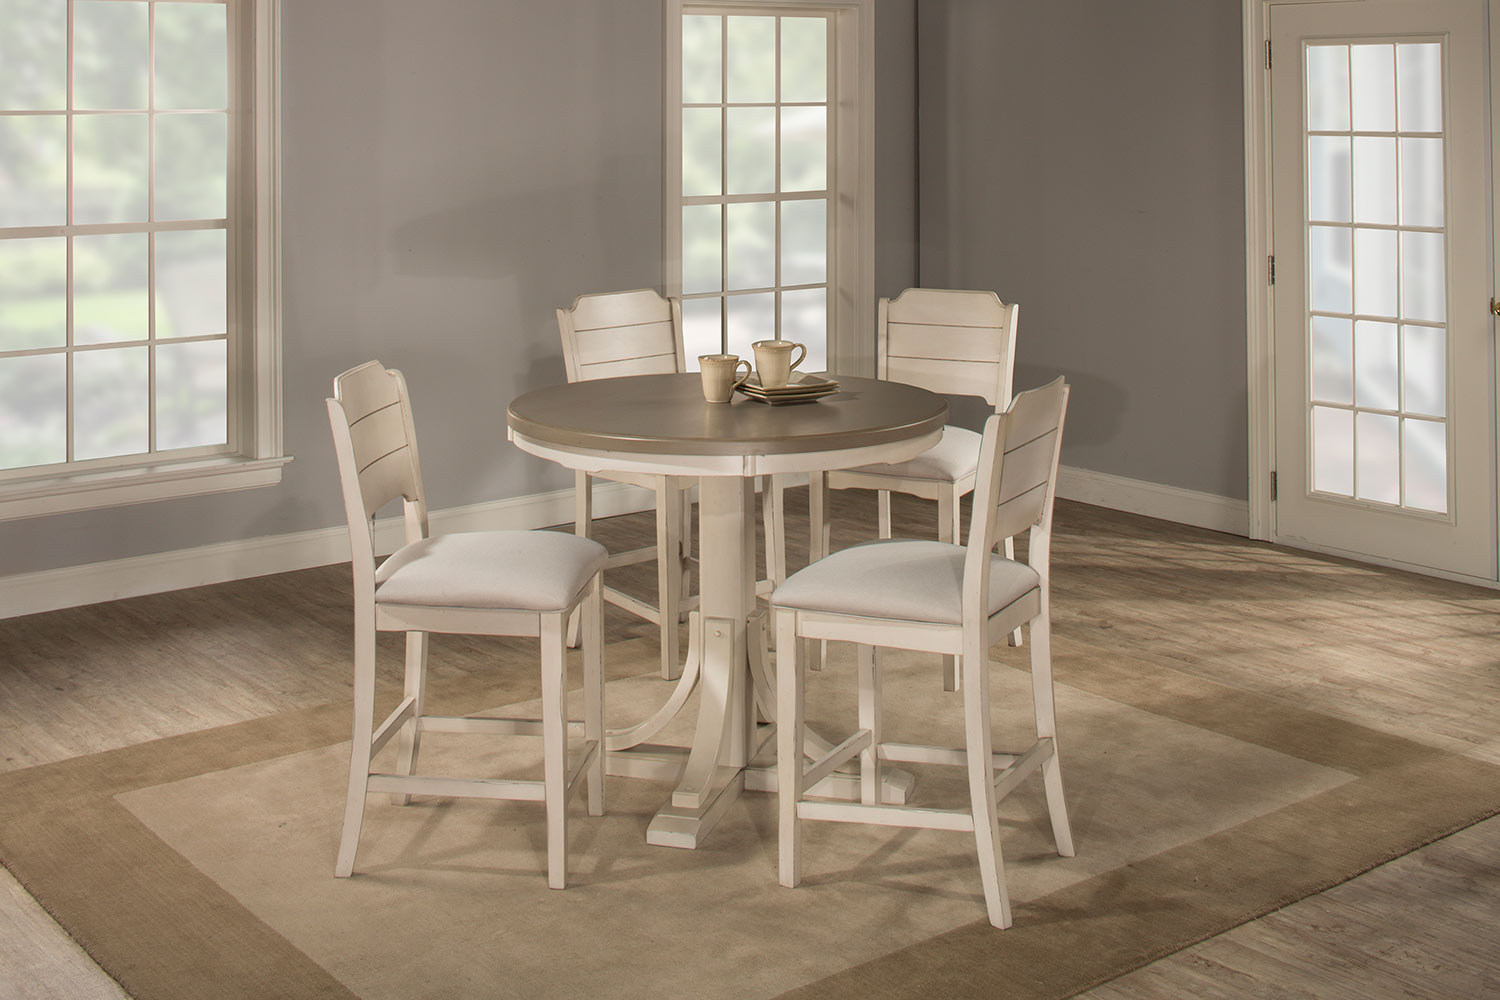 Hillsdale Clarion 5 Piece Round Counter Height Dining Set With Open Back  Stools   Gray